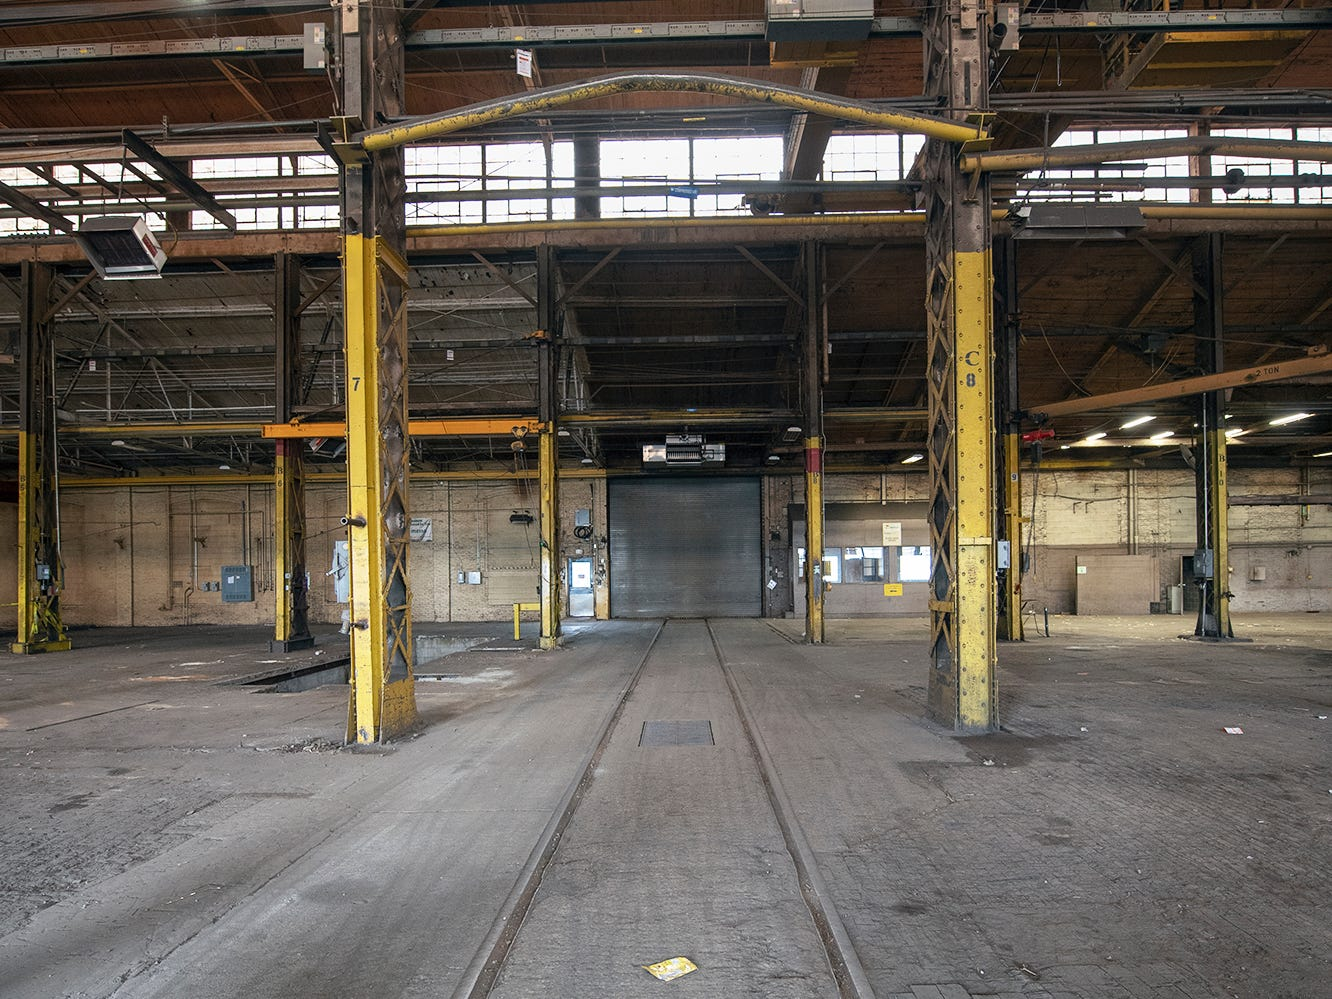 Looking inside one of the former Metso buildings with railroad tracks running through the building that Bill Hynes, CEO and founder of UFD plans on renovating.